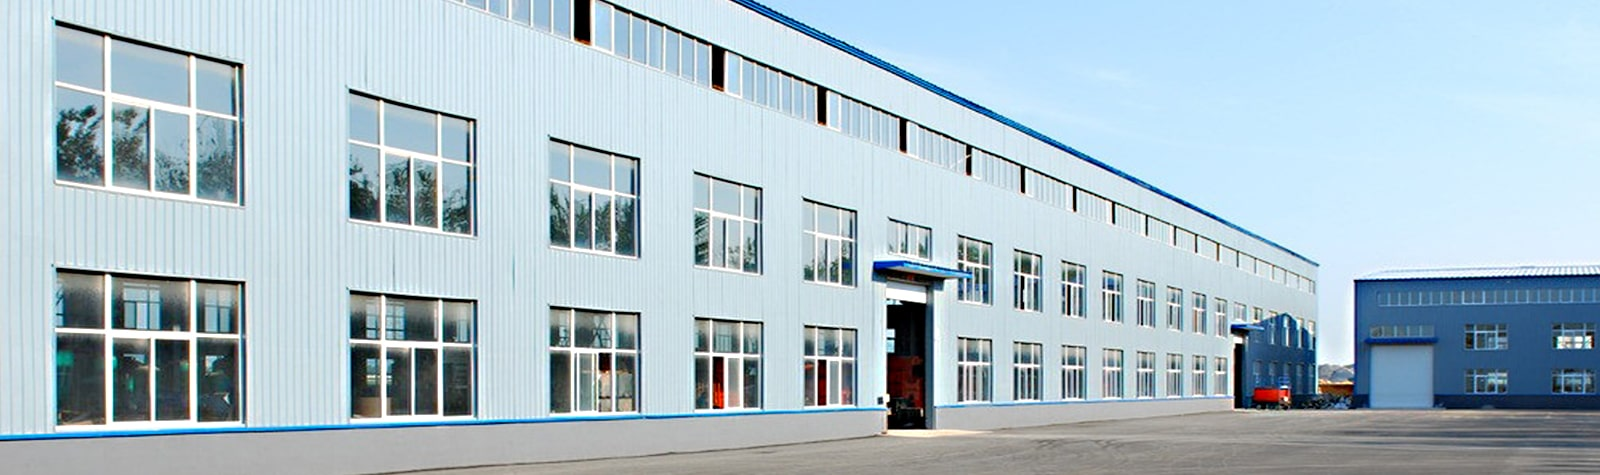 our factory of packing machine and warehousing equipment